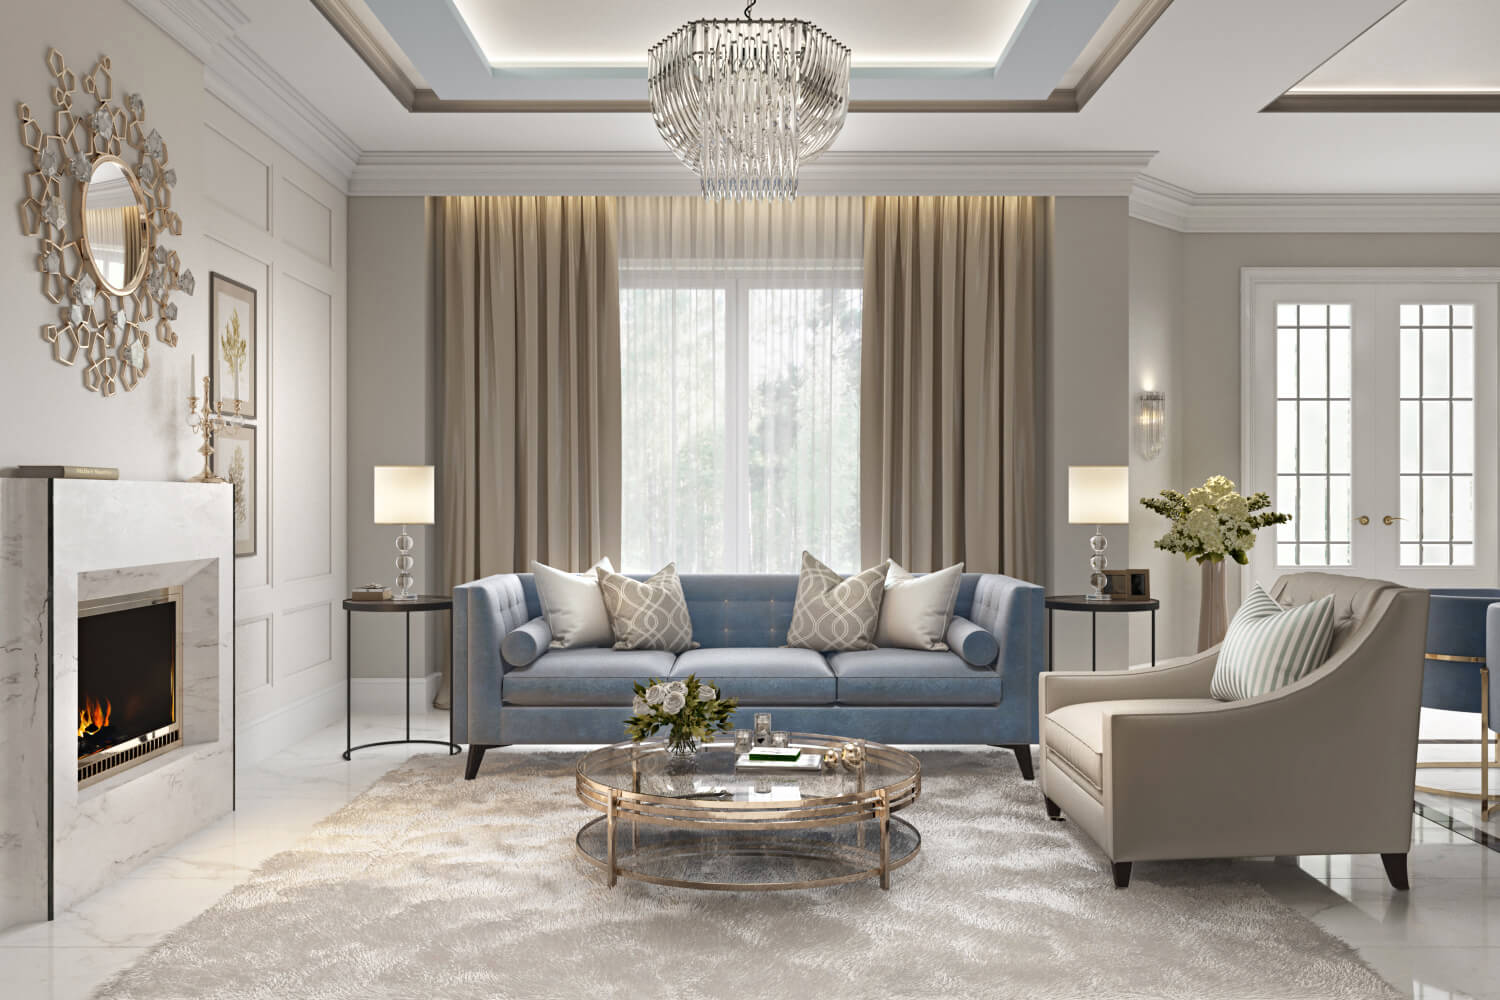 3D Visualization of a Posh Living Room with Classic Design